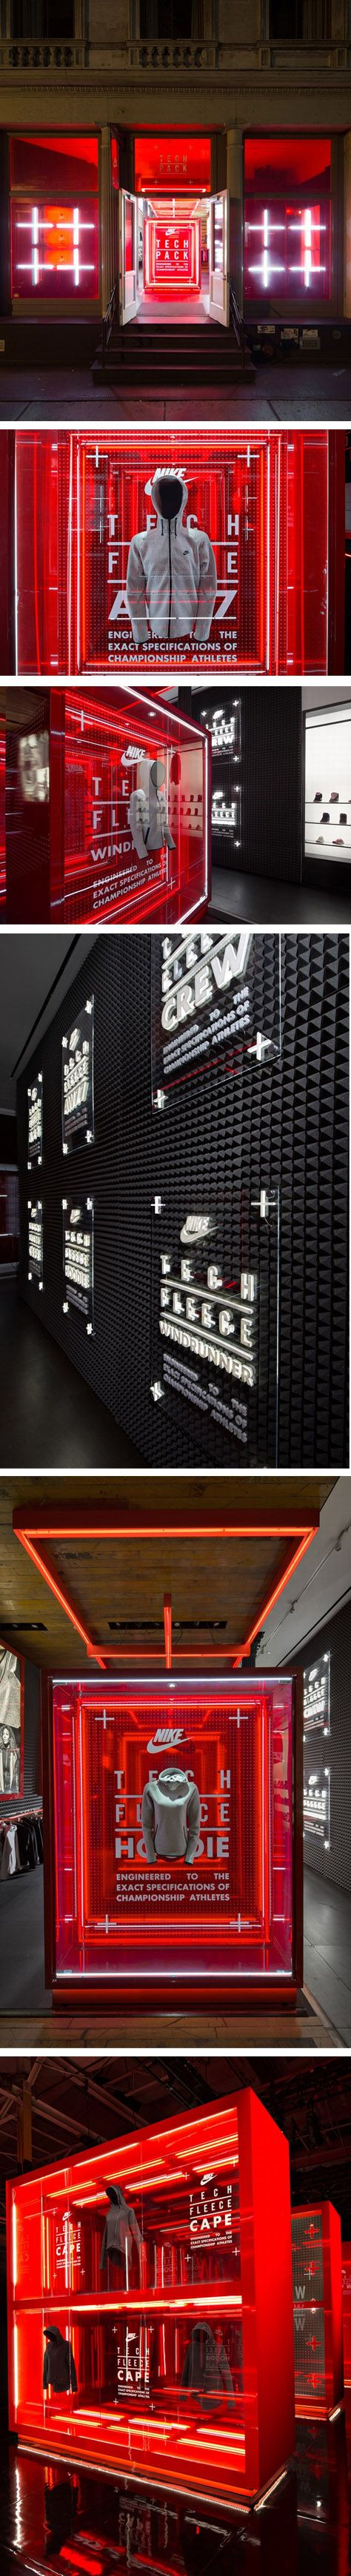 Nike flagship store by Nike & WeShouldDoItAll & Corey Yurkovich, New York City.